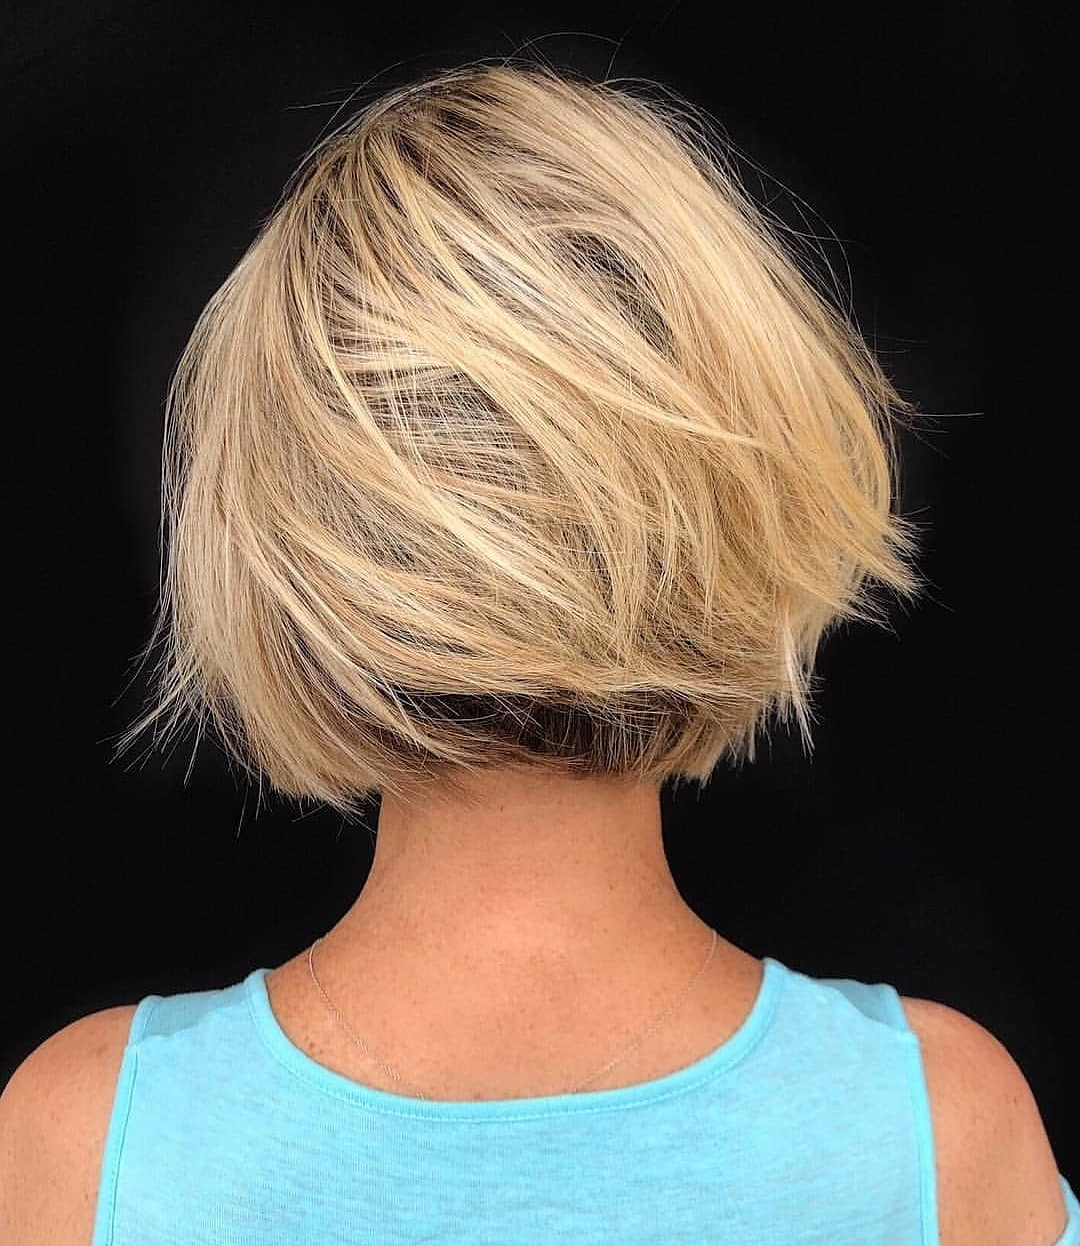 Top 10 Low Maintenance Short Bob Cuts For Thick Hair, Short Inside Easy Maintenance Short Hairstyles (View 9 of 25)